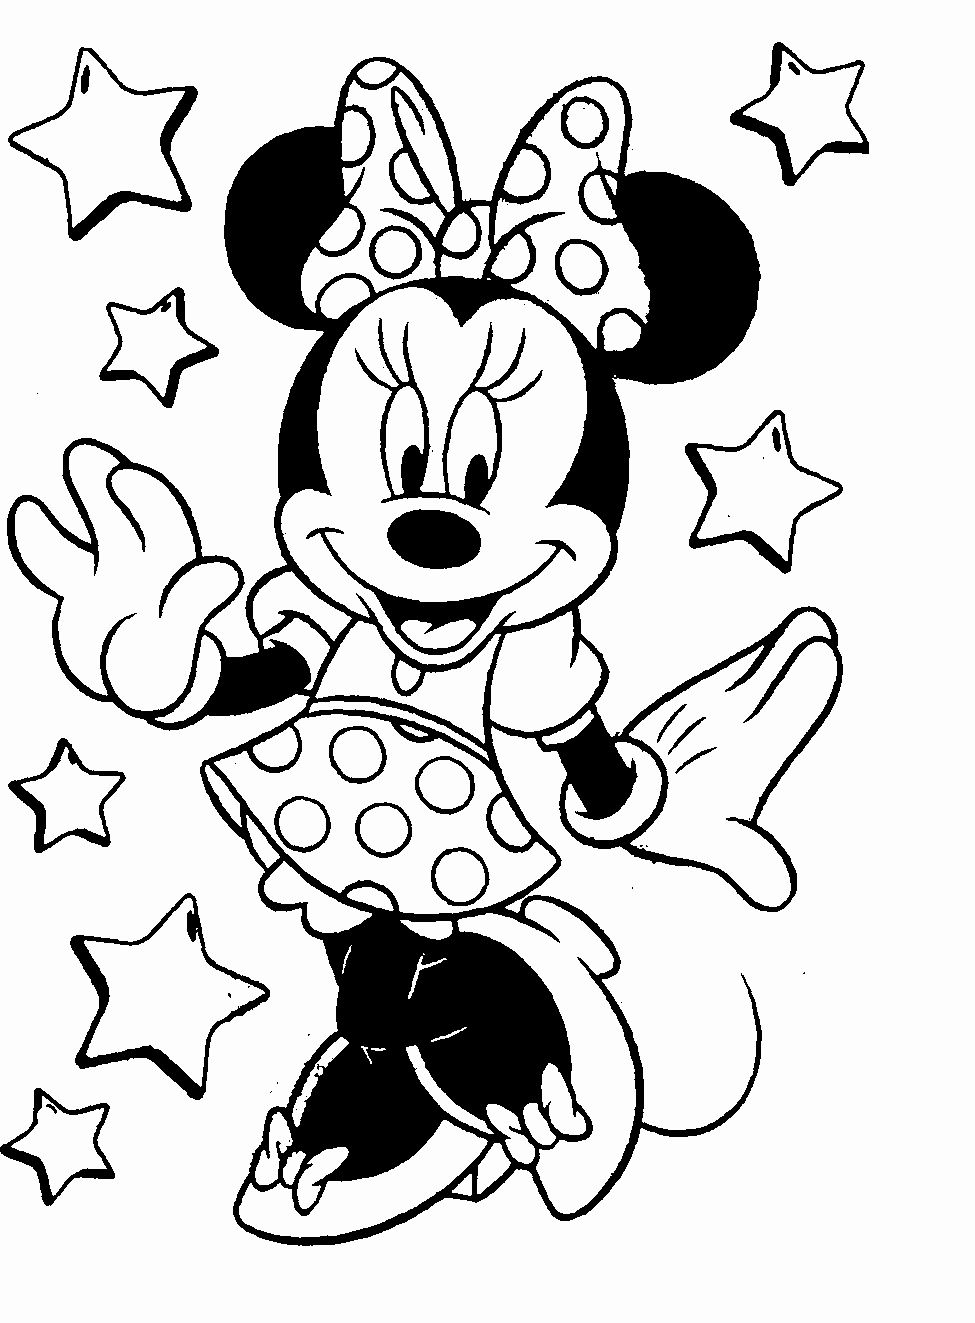 Disney Coloring Pages For Kids Mickey And Minnie Mickey Mouse Coloring Pages Minnie Mouse Coloring Pages Mickey Coloring Pages